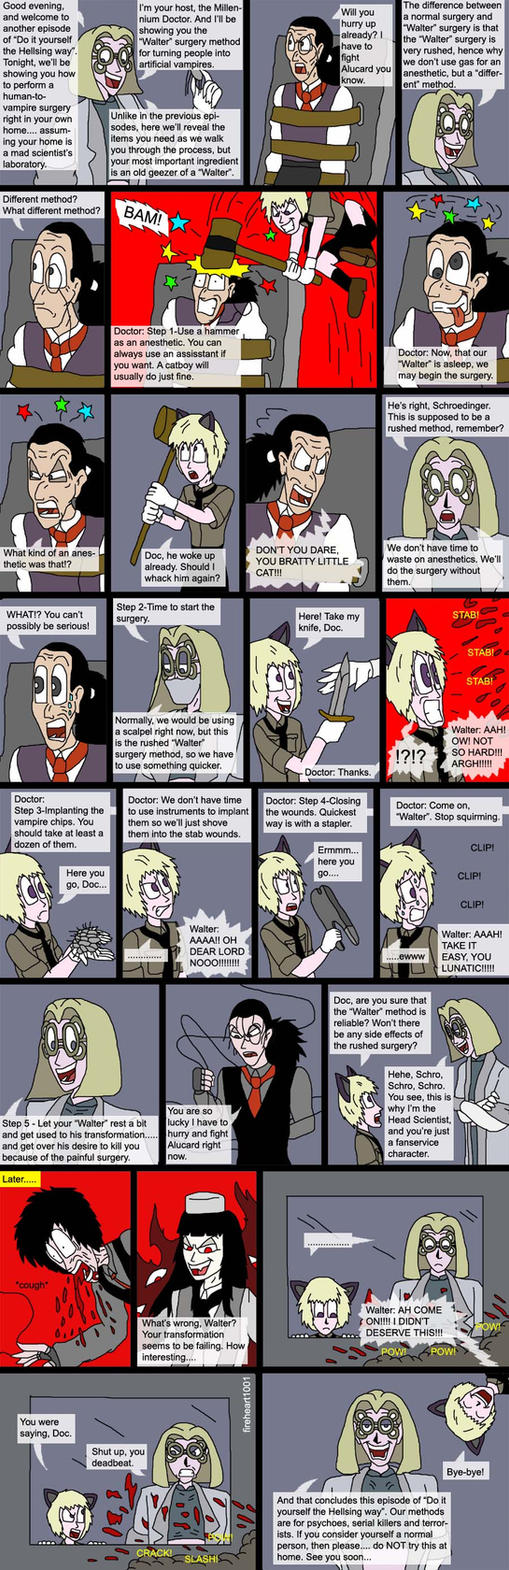 Hellsing bloopers 44 surgery by fireheart1001 on deviantart hellsing bloopers 44 surgery by fireheart1001 solutioingenieria Gallery